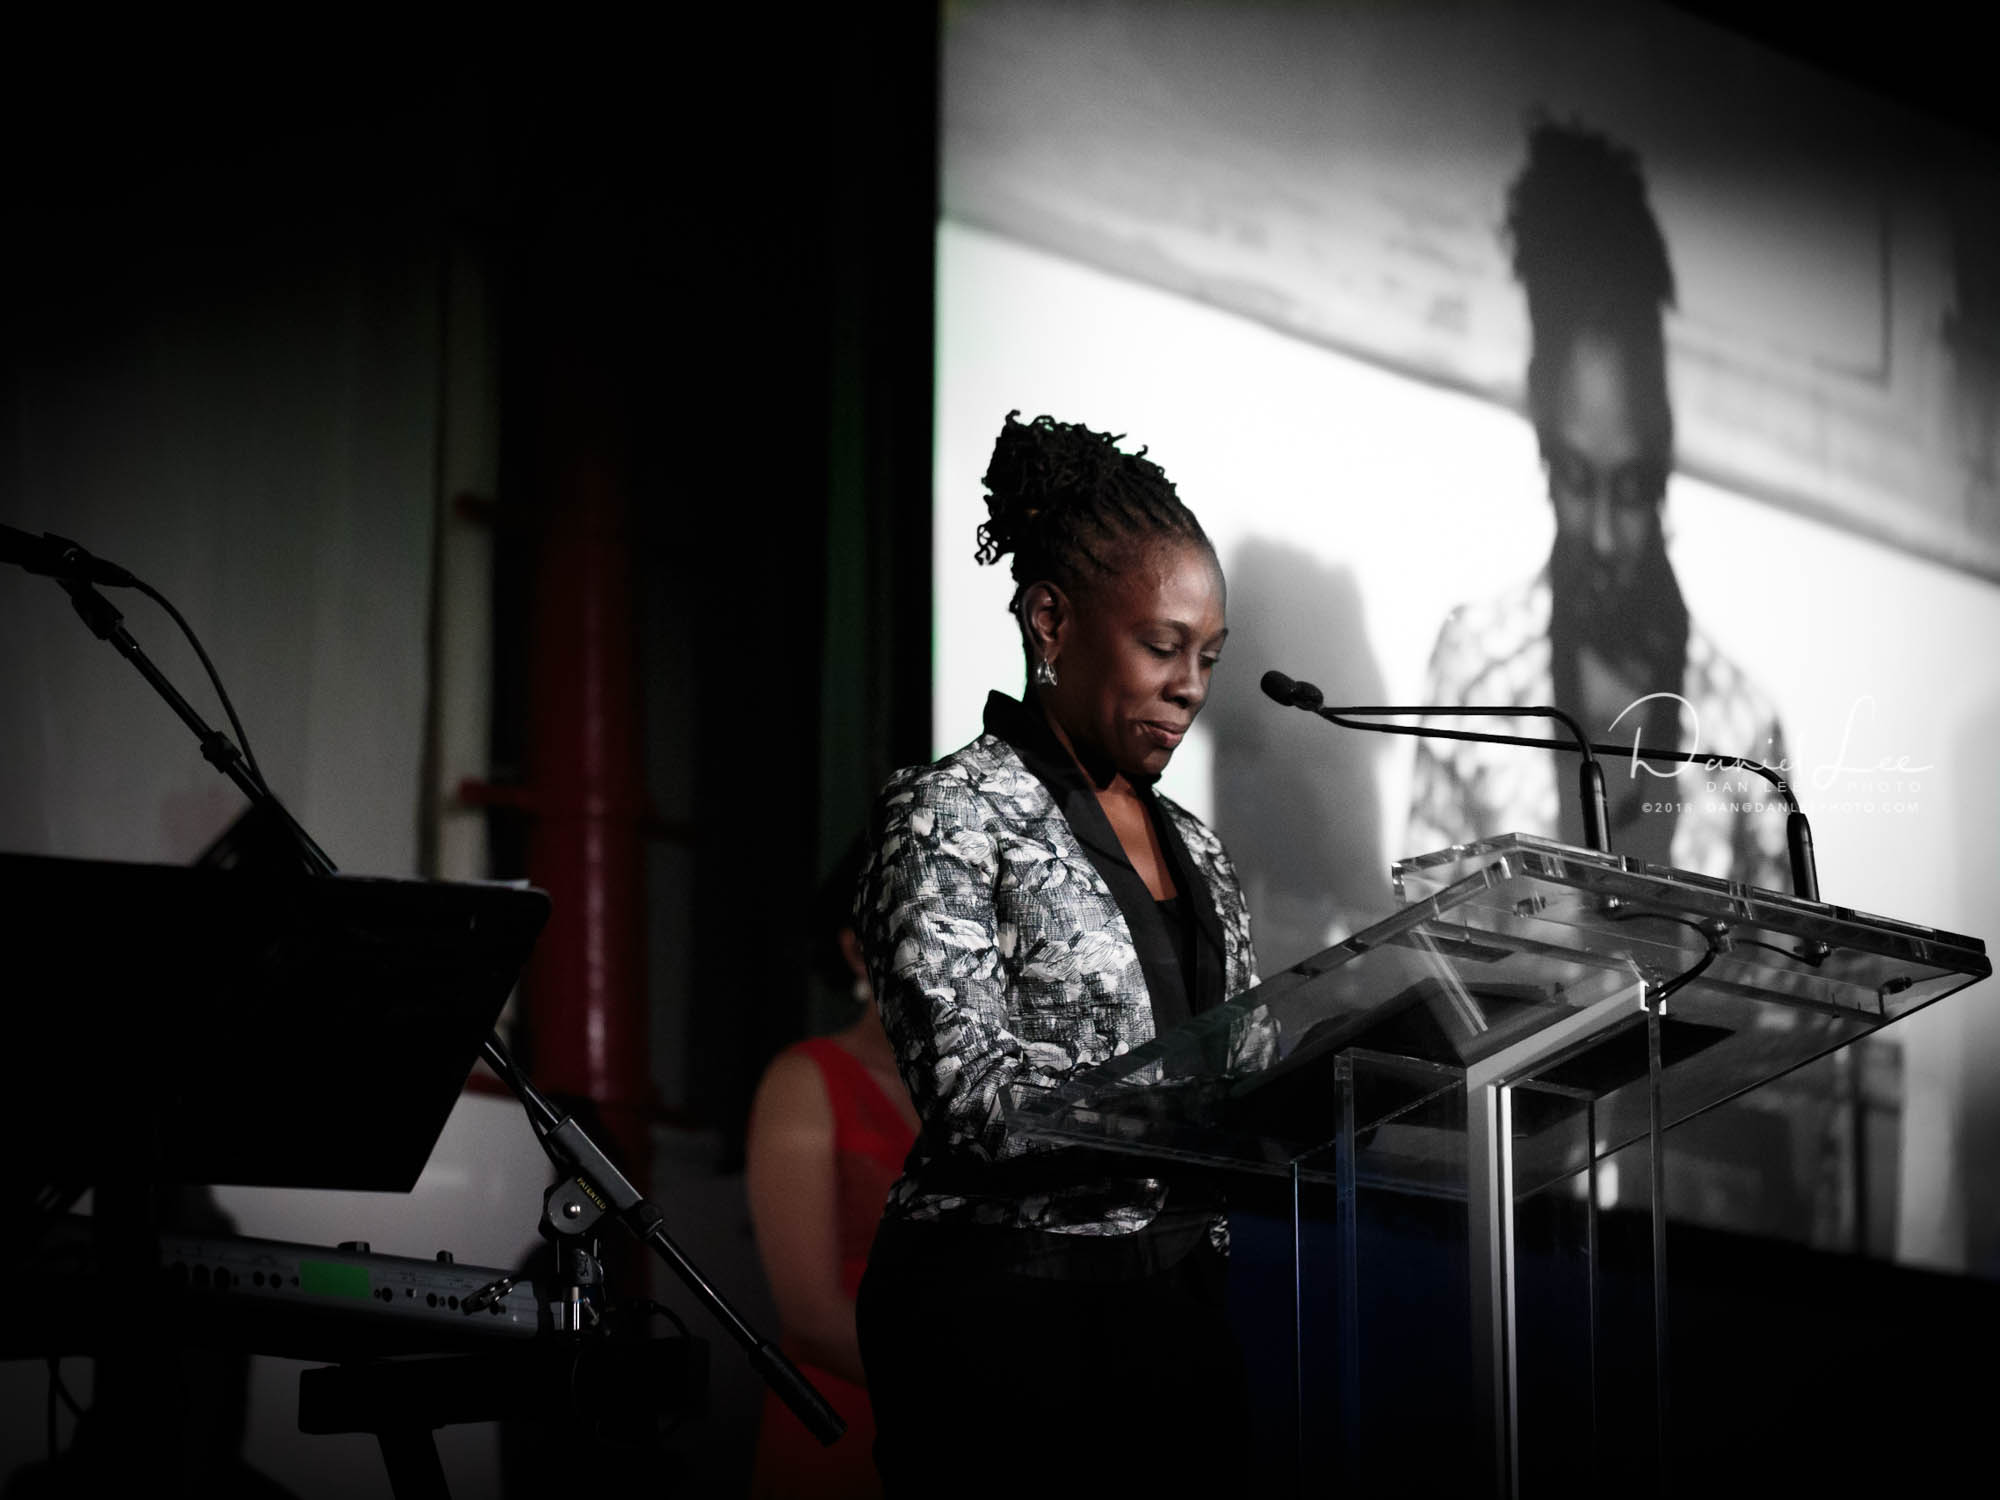 Chirlane McCray leads attendees of Korean Community Services of Metropolitan New York, Inc. (KCS)'s 42nd Anniversary Gala through a moment of silence for victims of the Paris attacks on November 13, 2015. Photo by Daniel Lee.